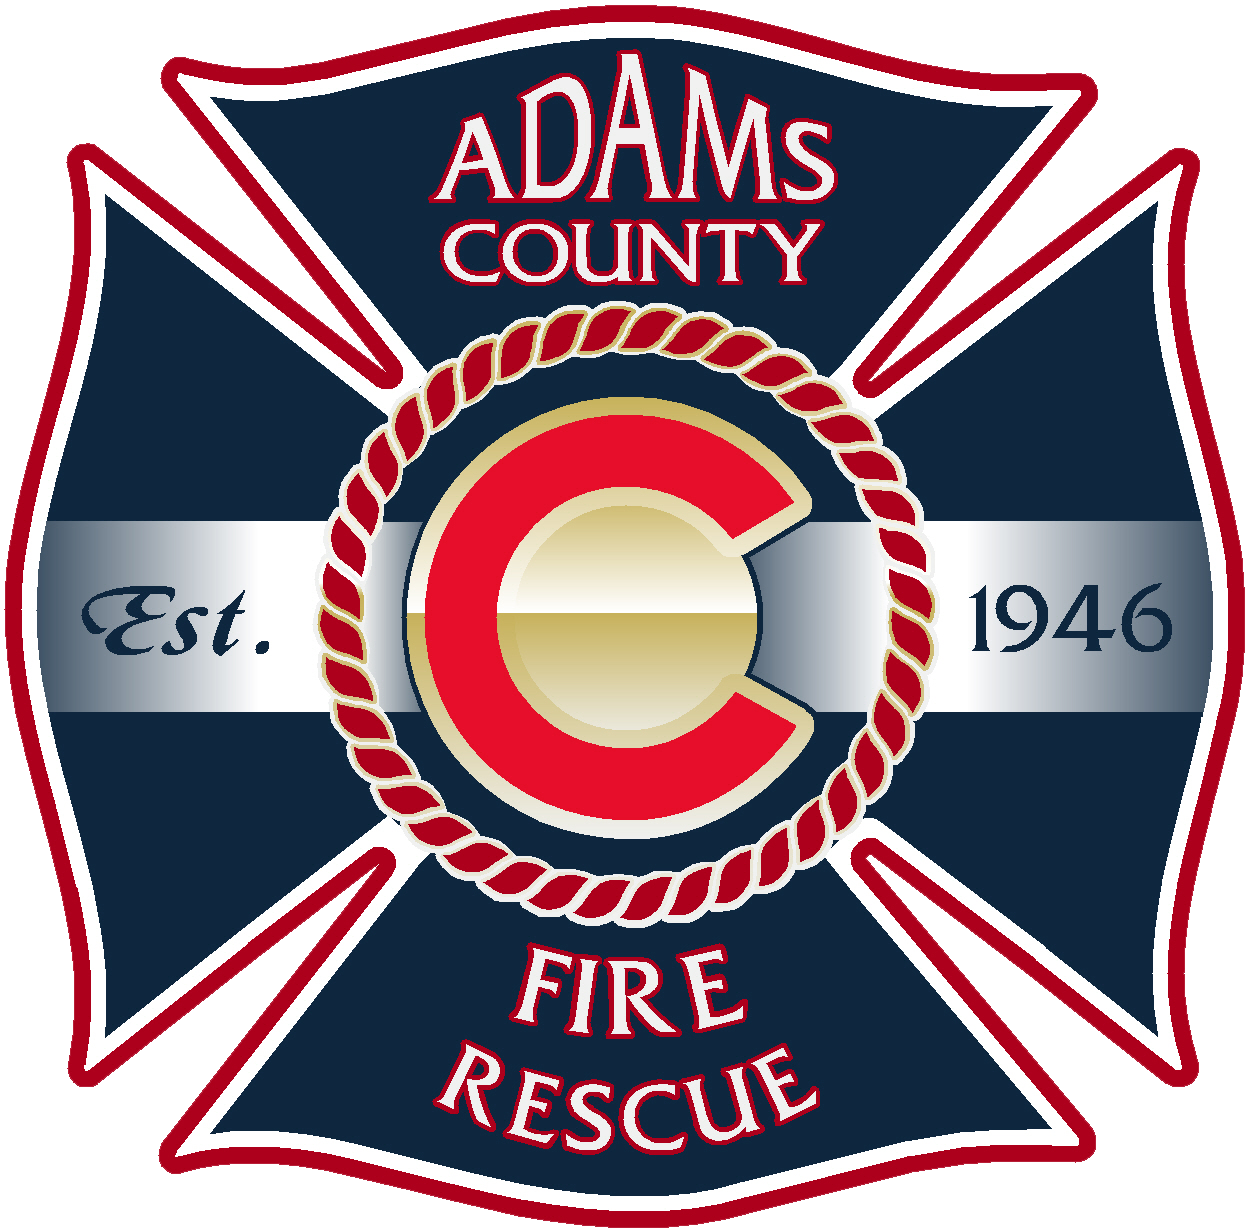 Grilling clipart fire incident. Adams county rescue public